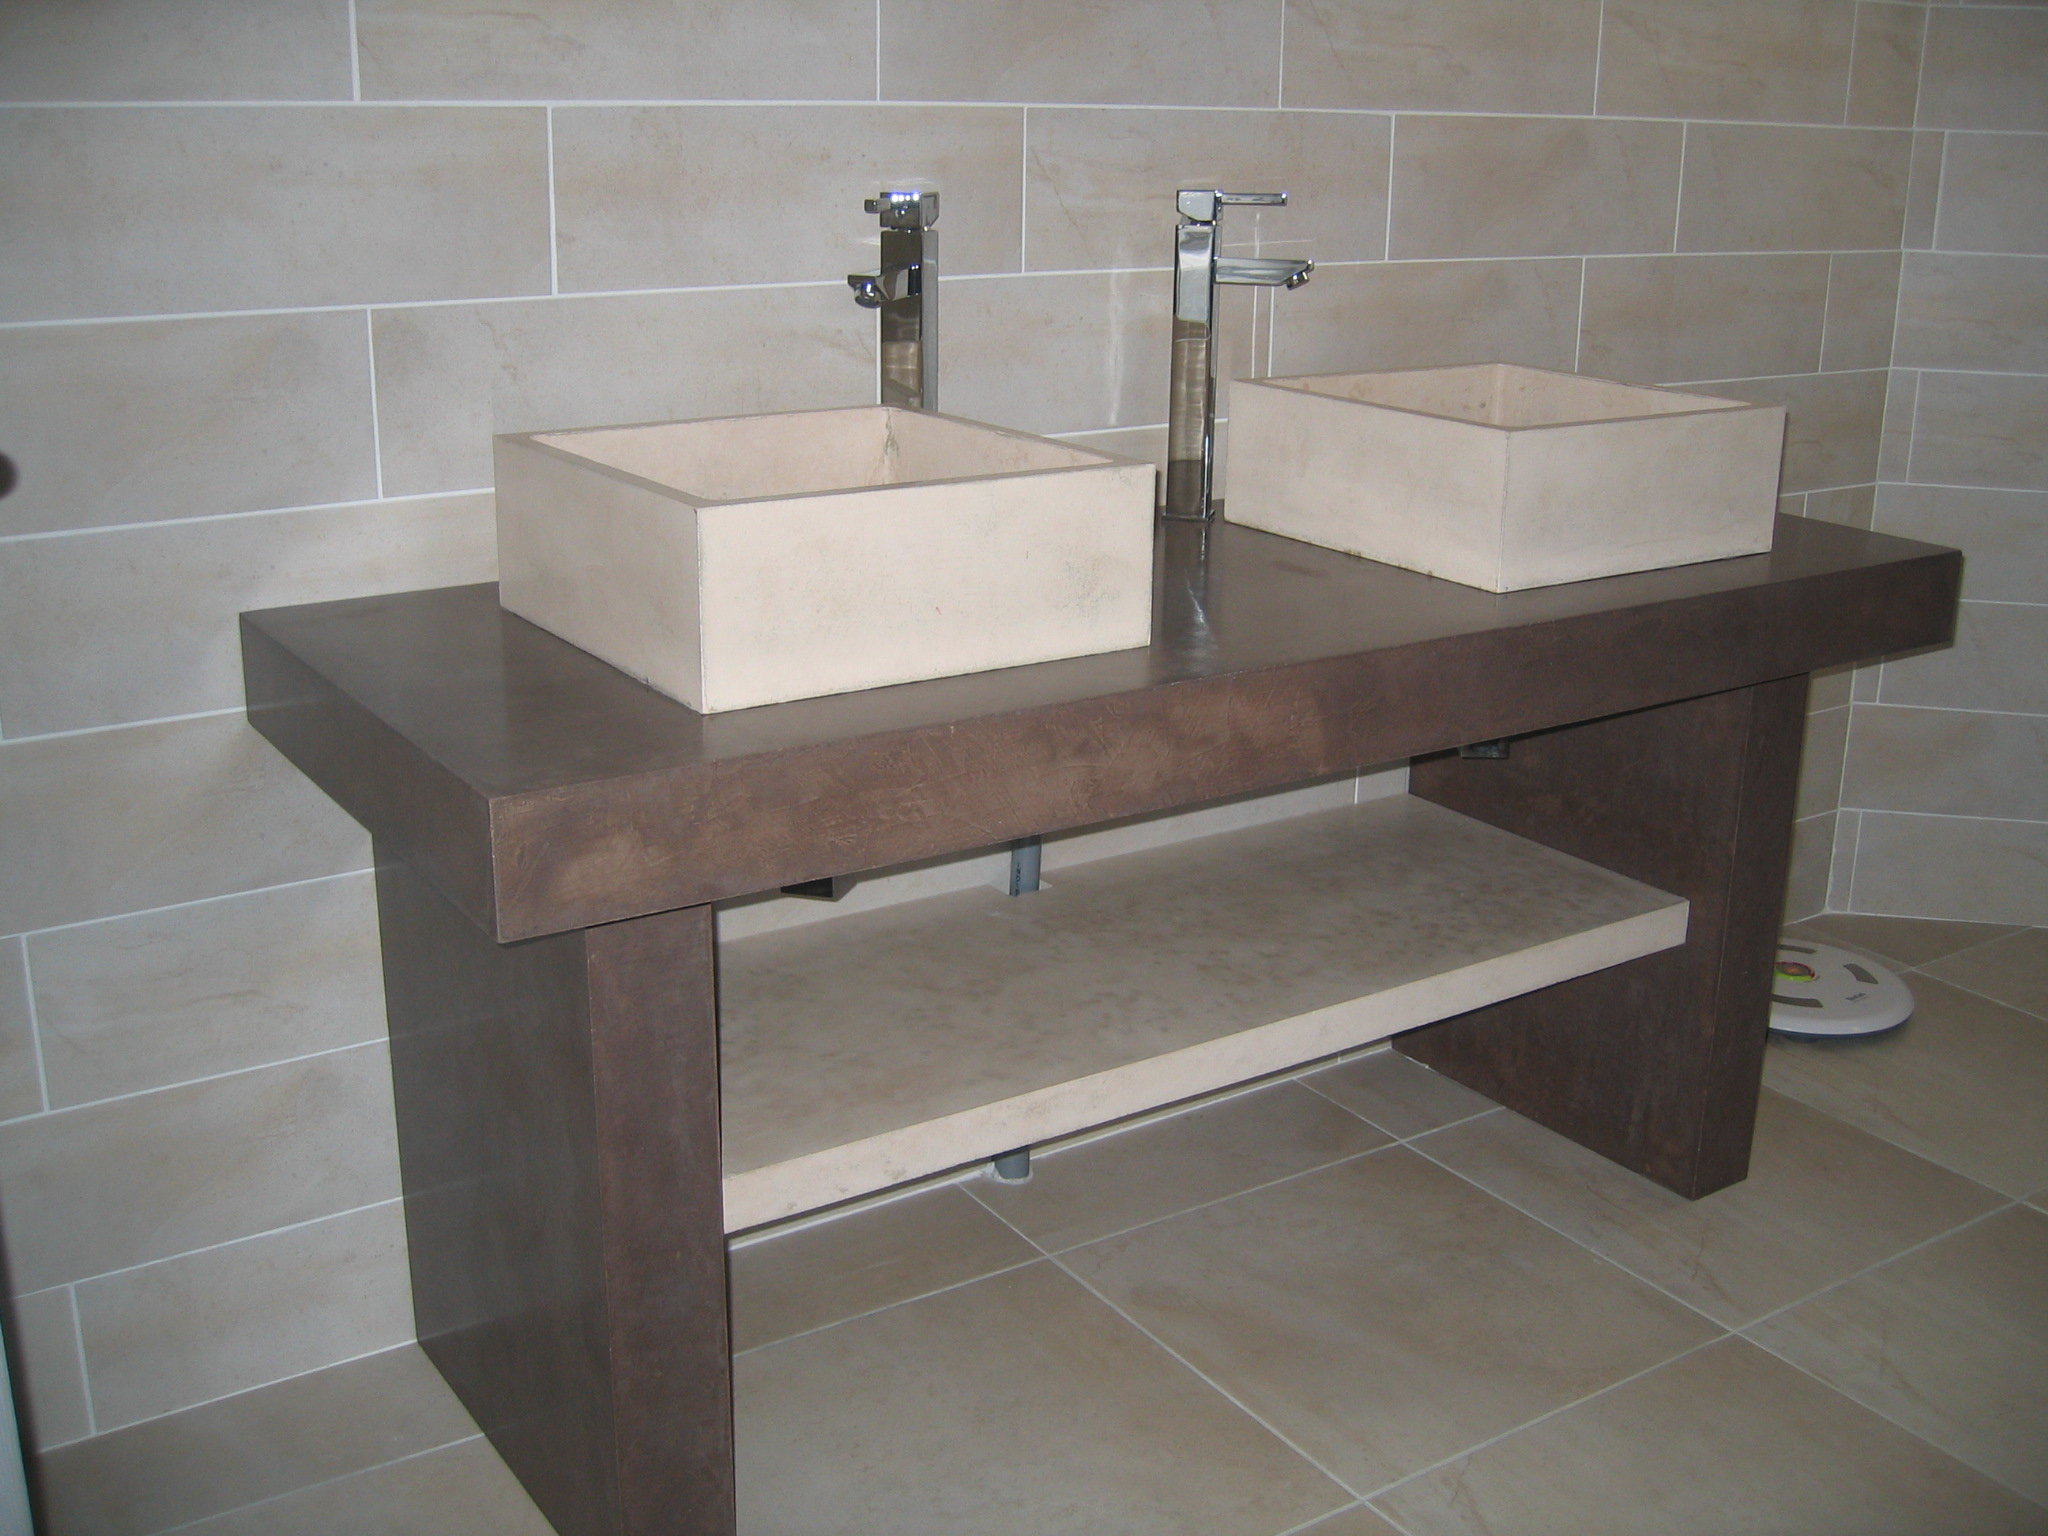 Microconcrete bathroom furniture with double washbasins